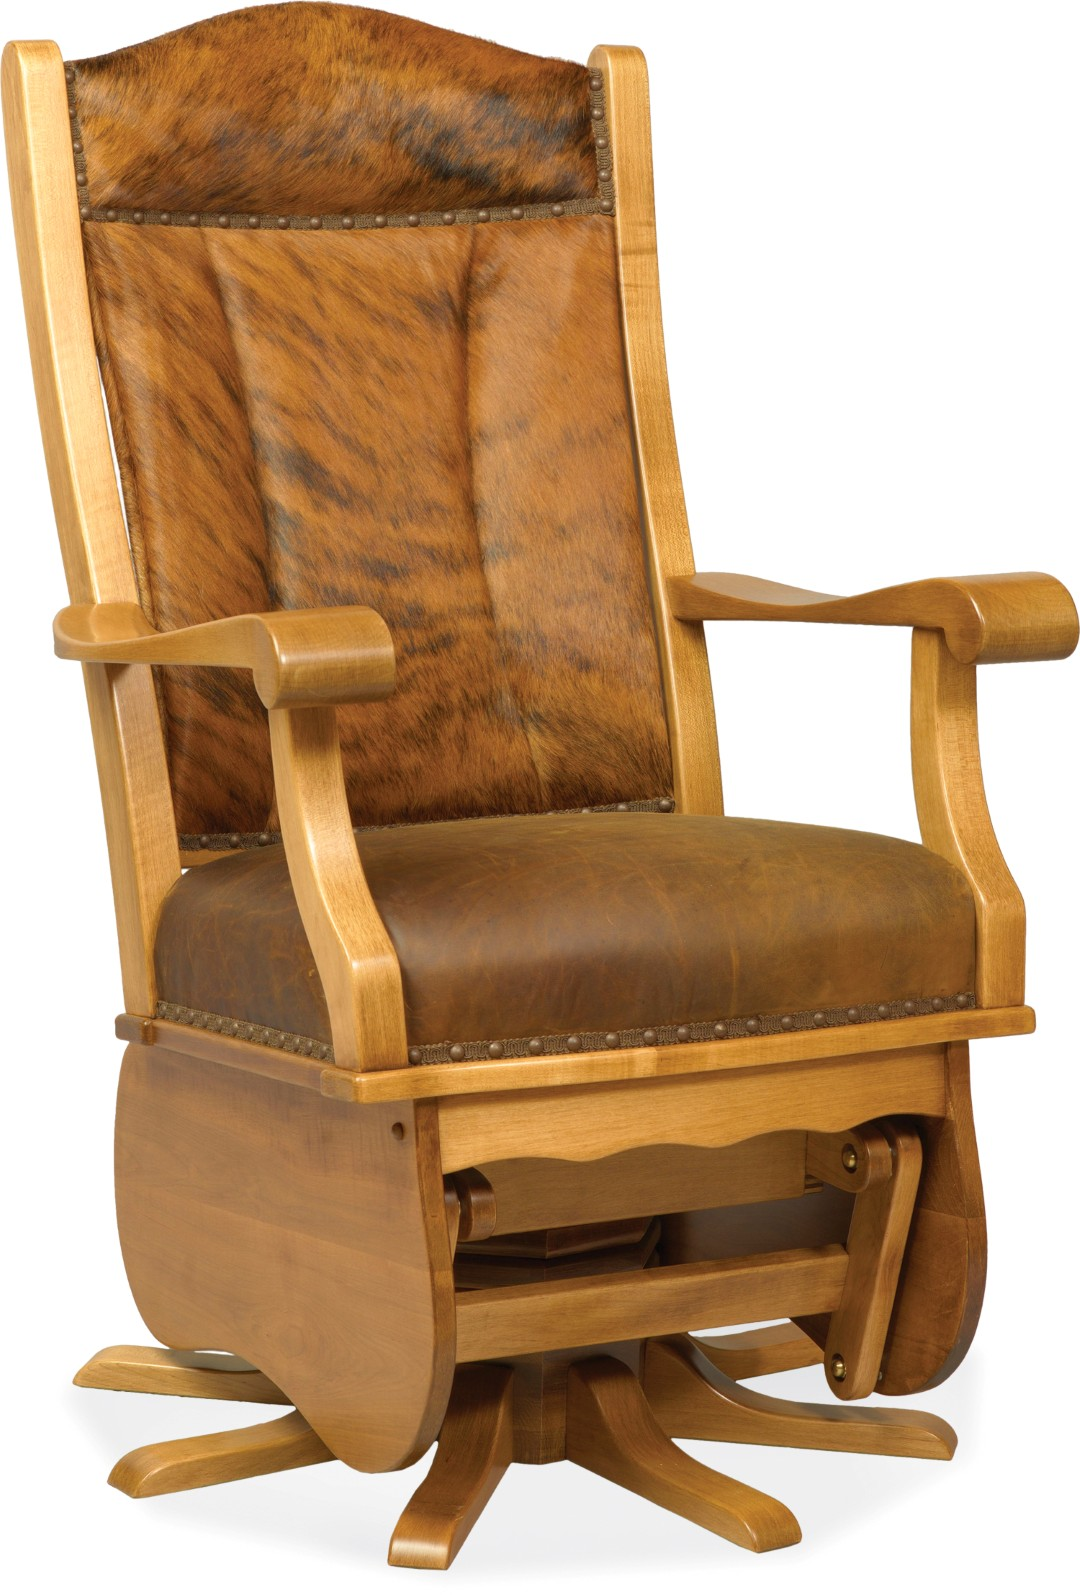 wide glider chair arm covers to buy buckeye town and country furniture